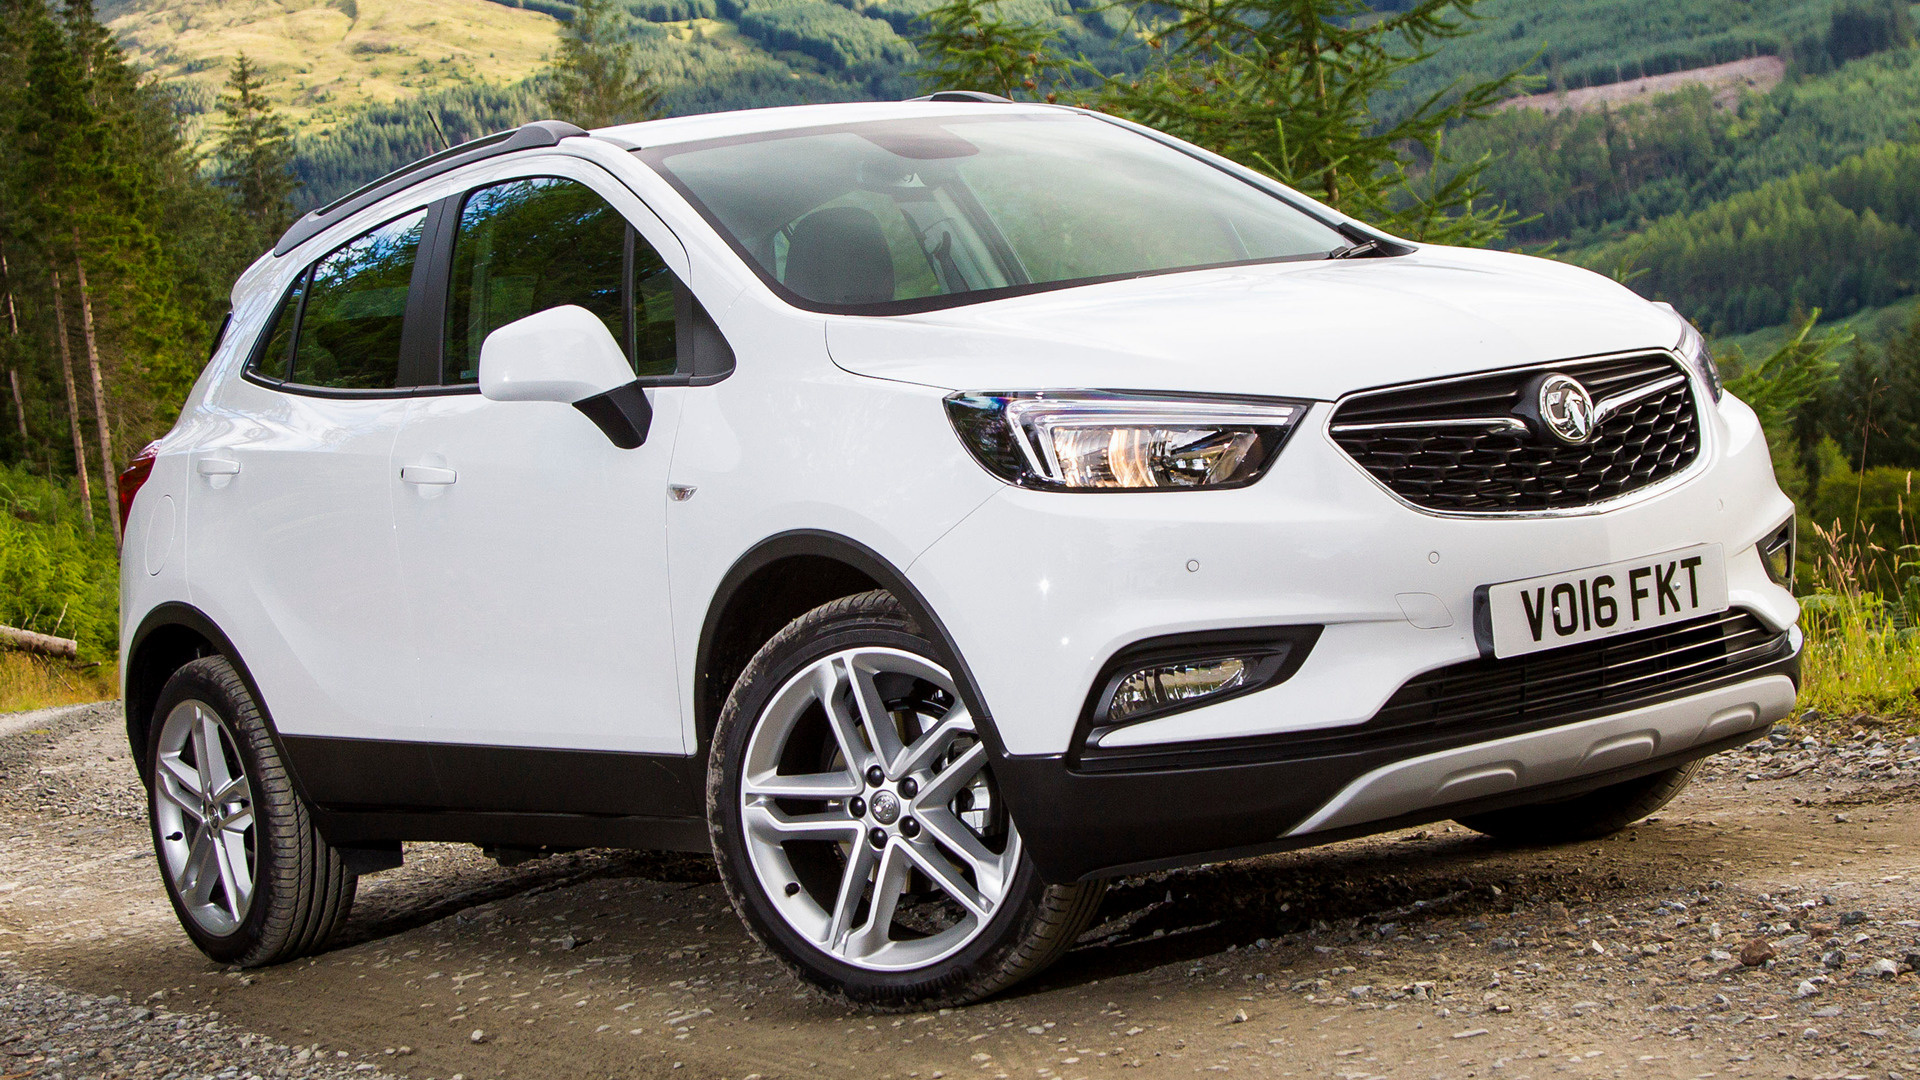 Vauxhall Mokka X (2016) Wallpapers and HD Images - Car Pixel